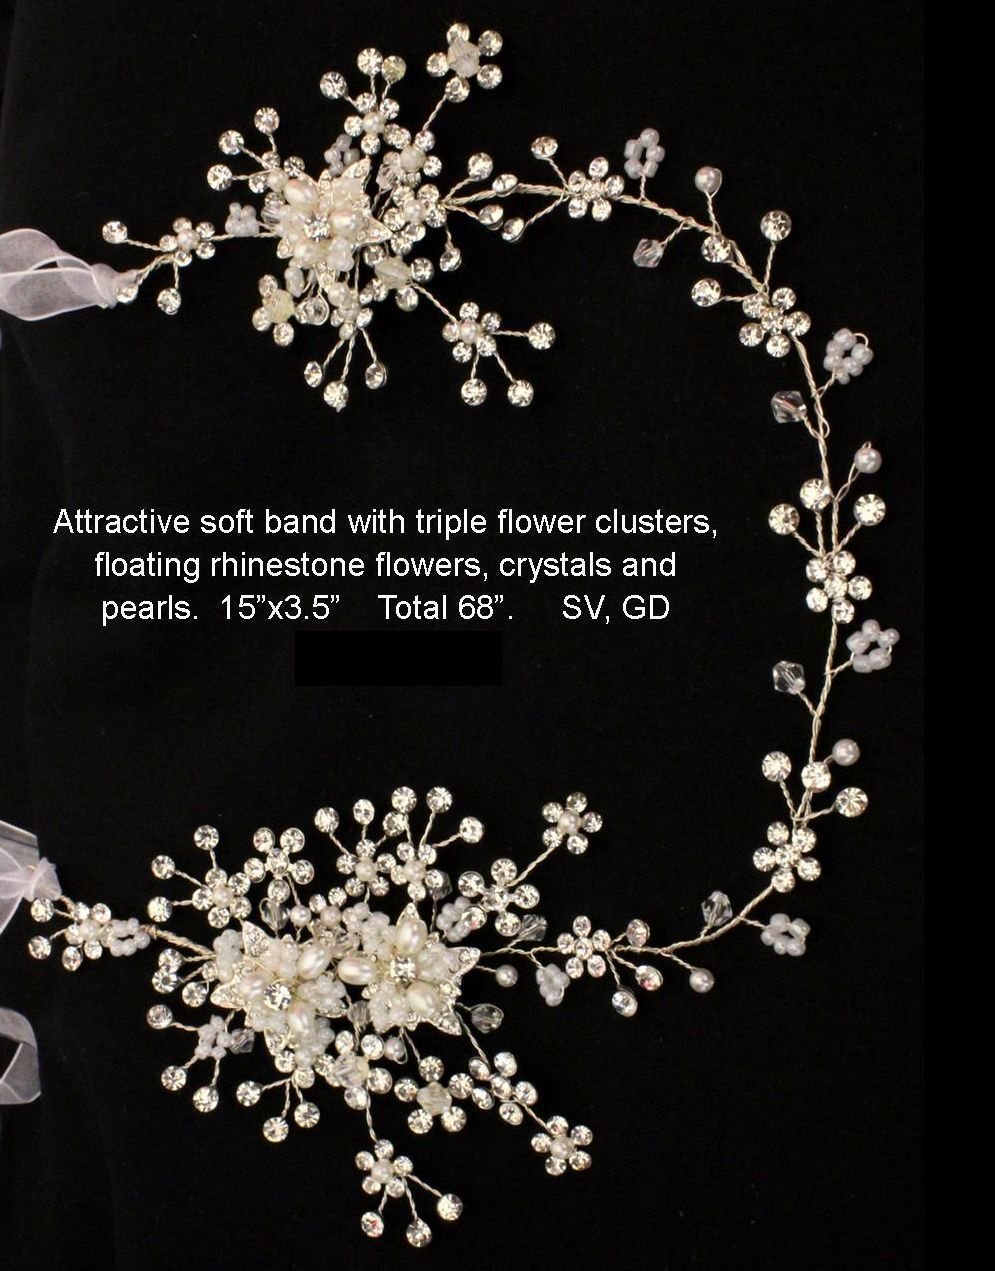 Primary image for Silver Gold Rhinestone Floral Bridal Prom Quinceanera Ribbon Headband Wired Vine